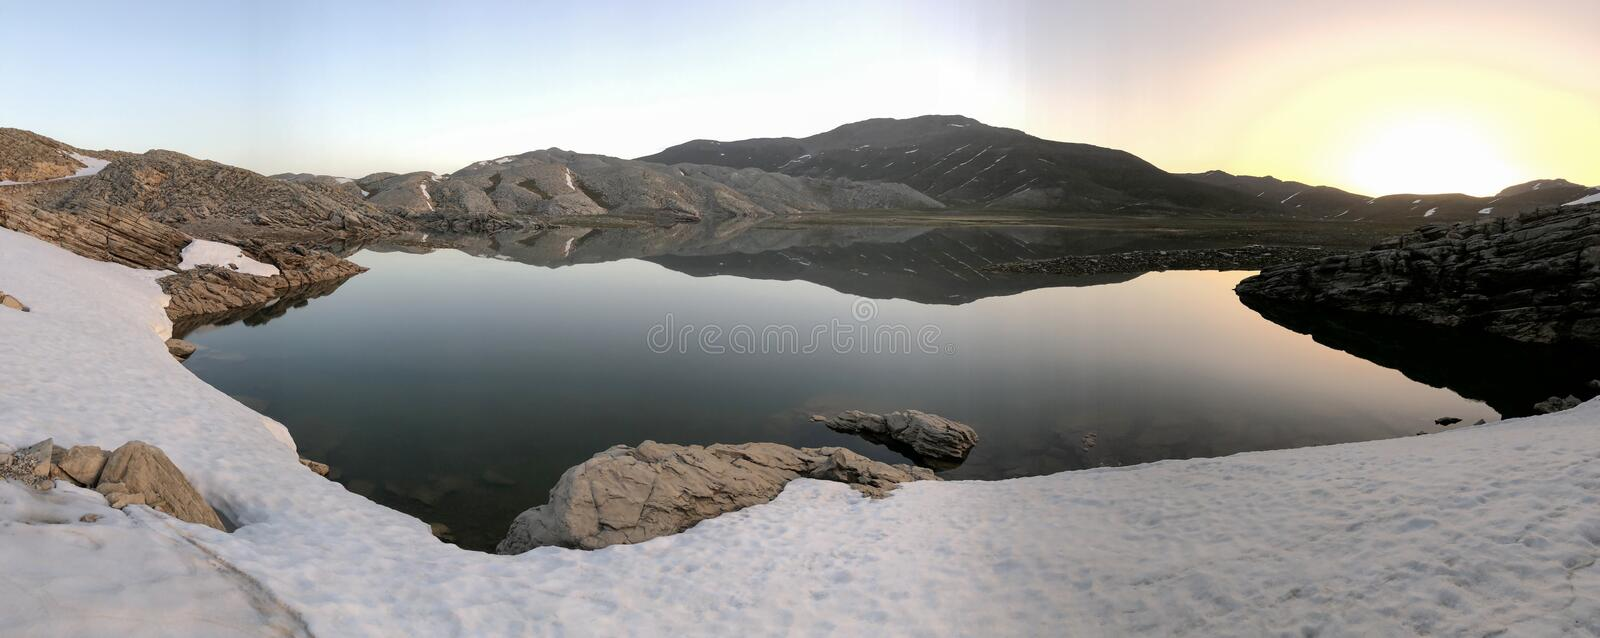 magnificent mountain lakes, snowmelt and waters stock image